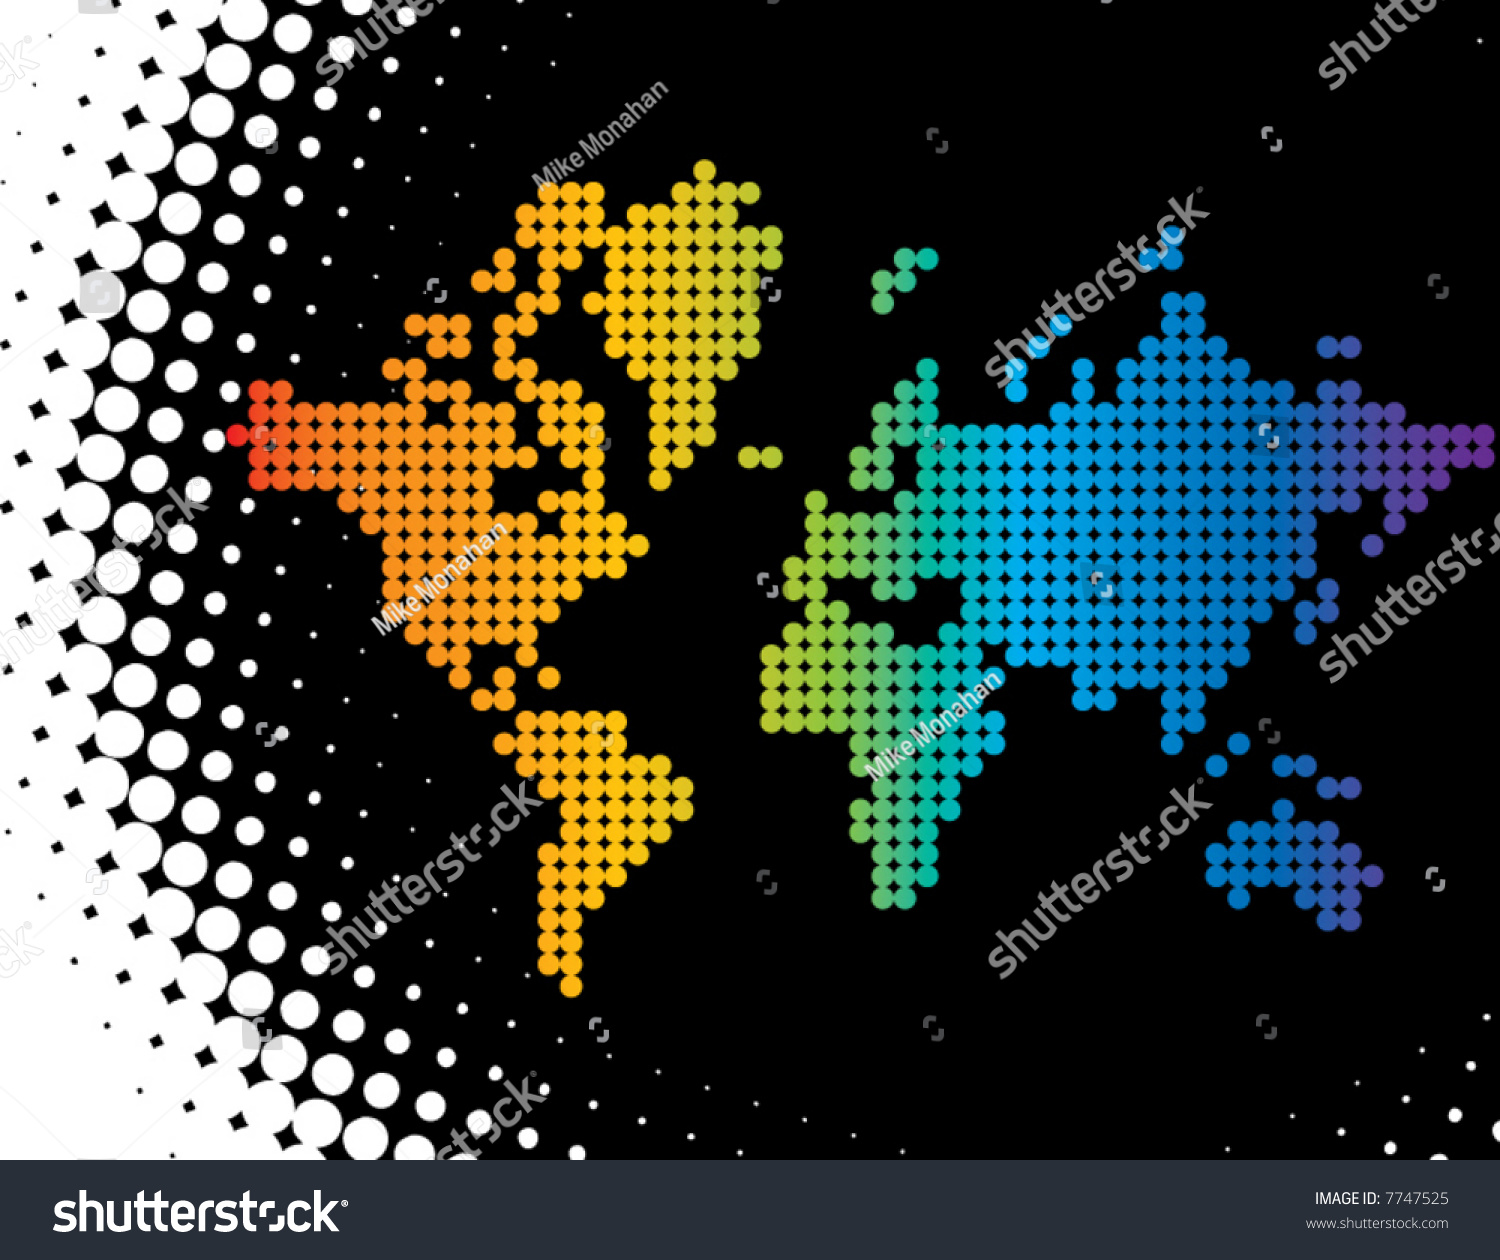 A vector map of the world made of color dots forming a editable a vector map of the world made of color dots forming a gumiabroncs Choice Image